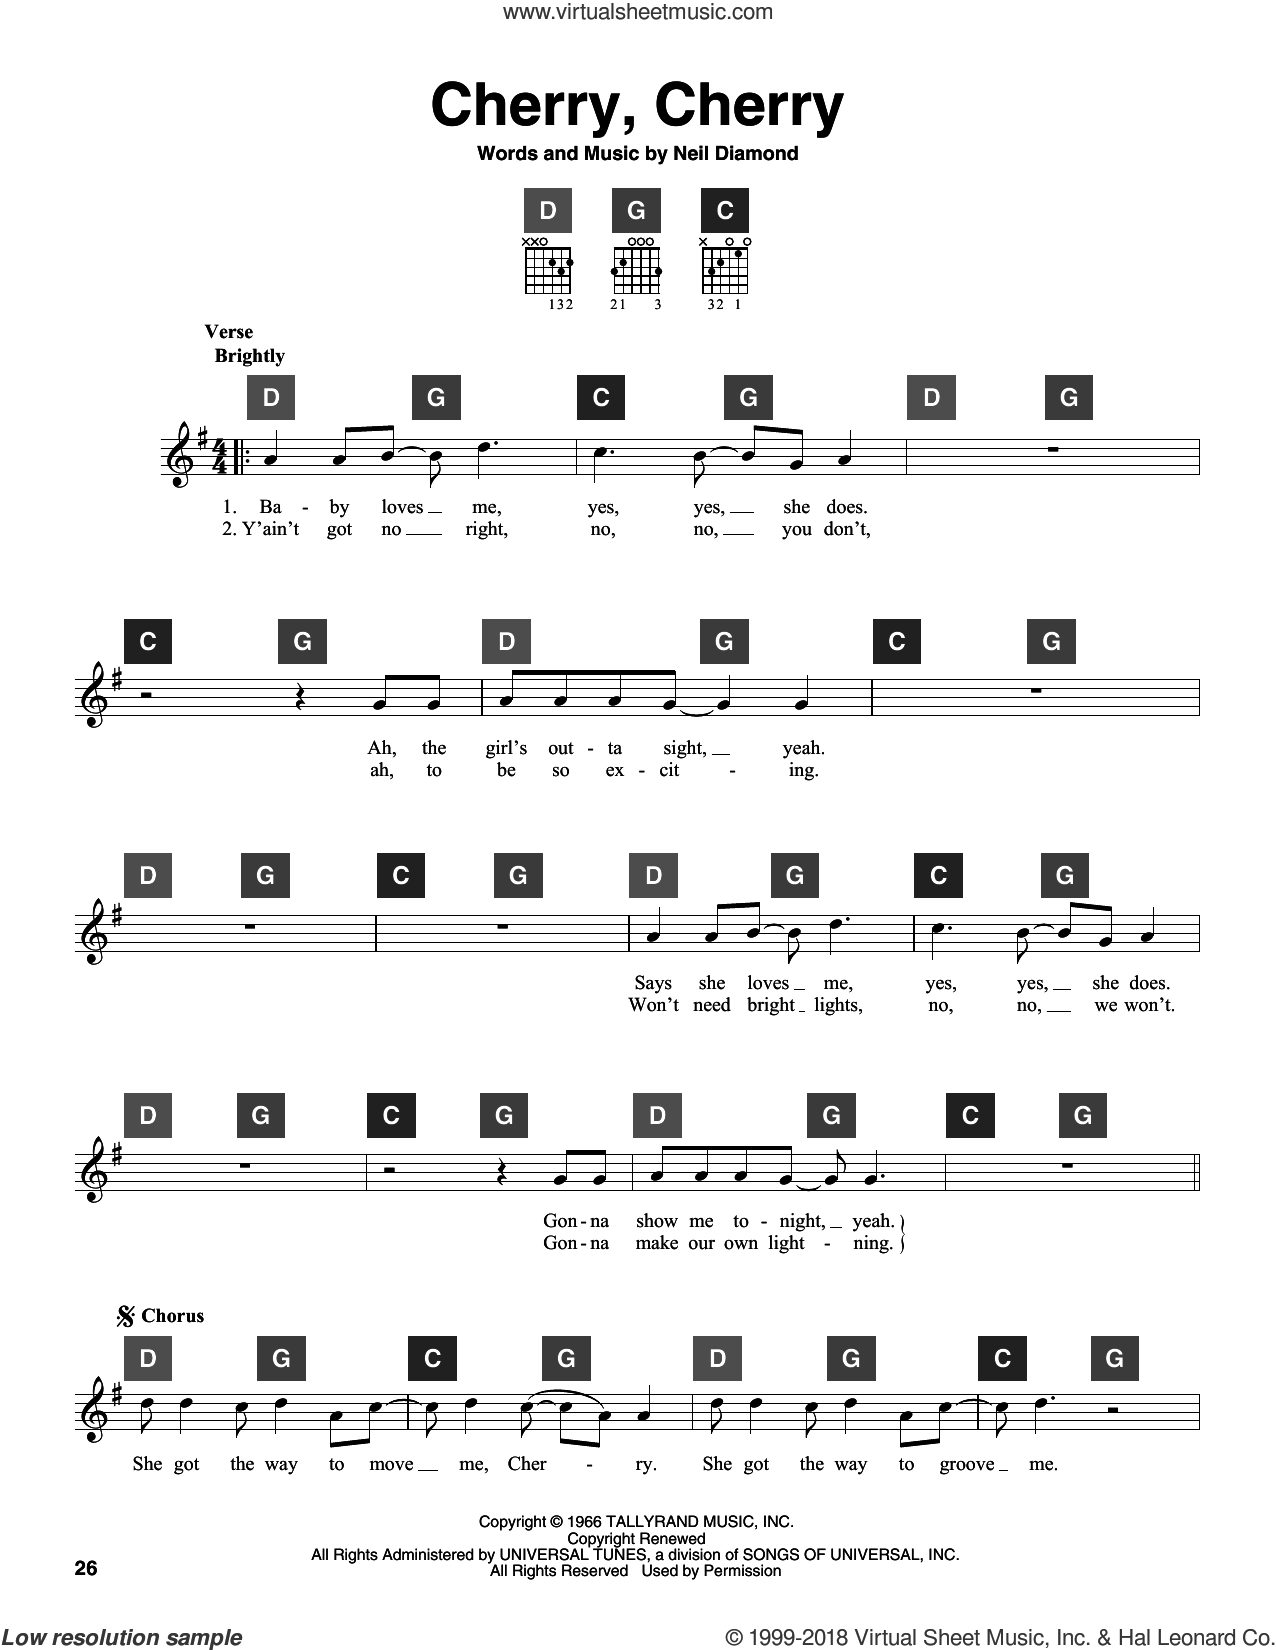 Cherry, Cherry sheet music for guitar solo (ChordBuddy system) by Neil Diamond, intermediate guitar (ChordBuddy system). Score Image Preview.